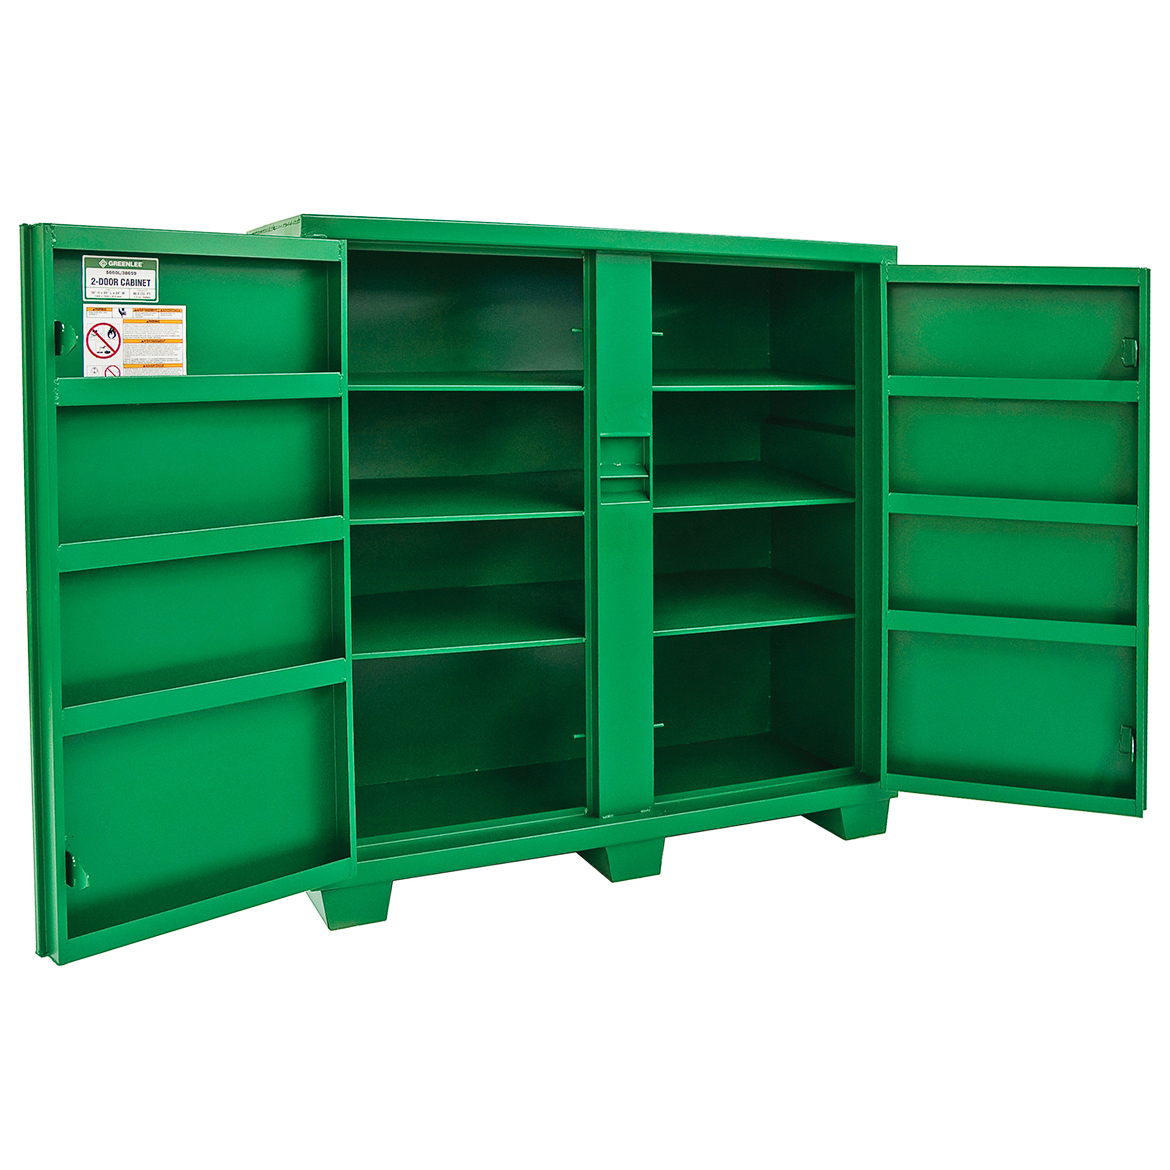 Details About Greenlee 5660l 56 X 60 X 24 Inch Heavy Duty Steel Storage Utility Cabinet